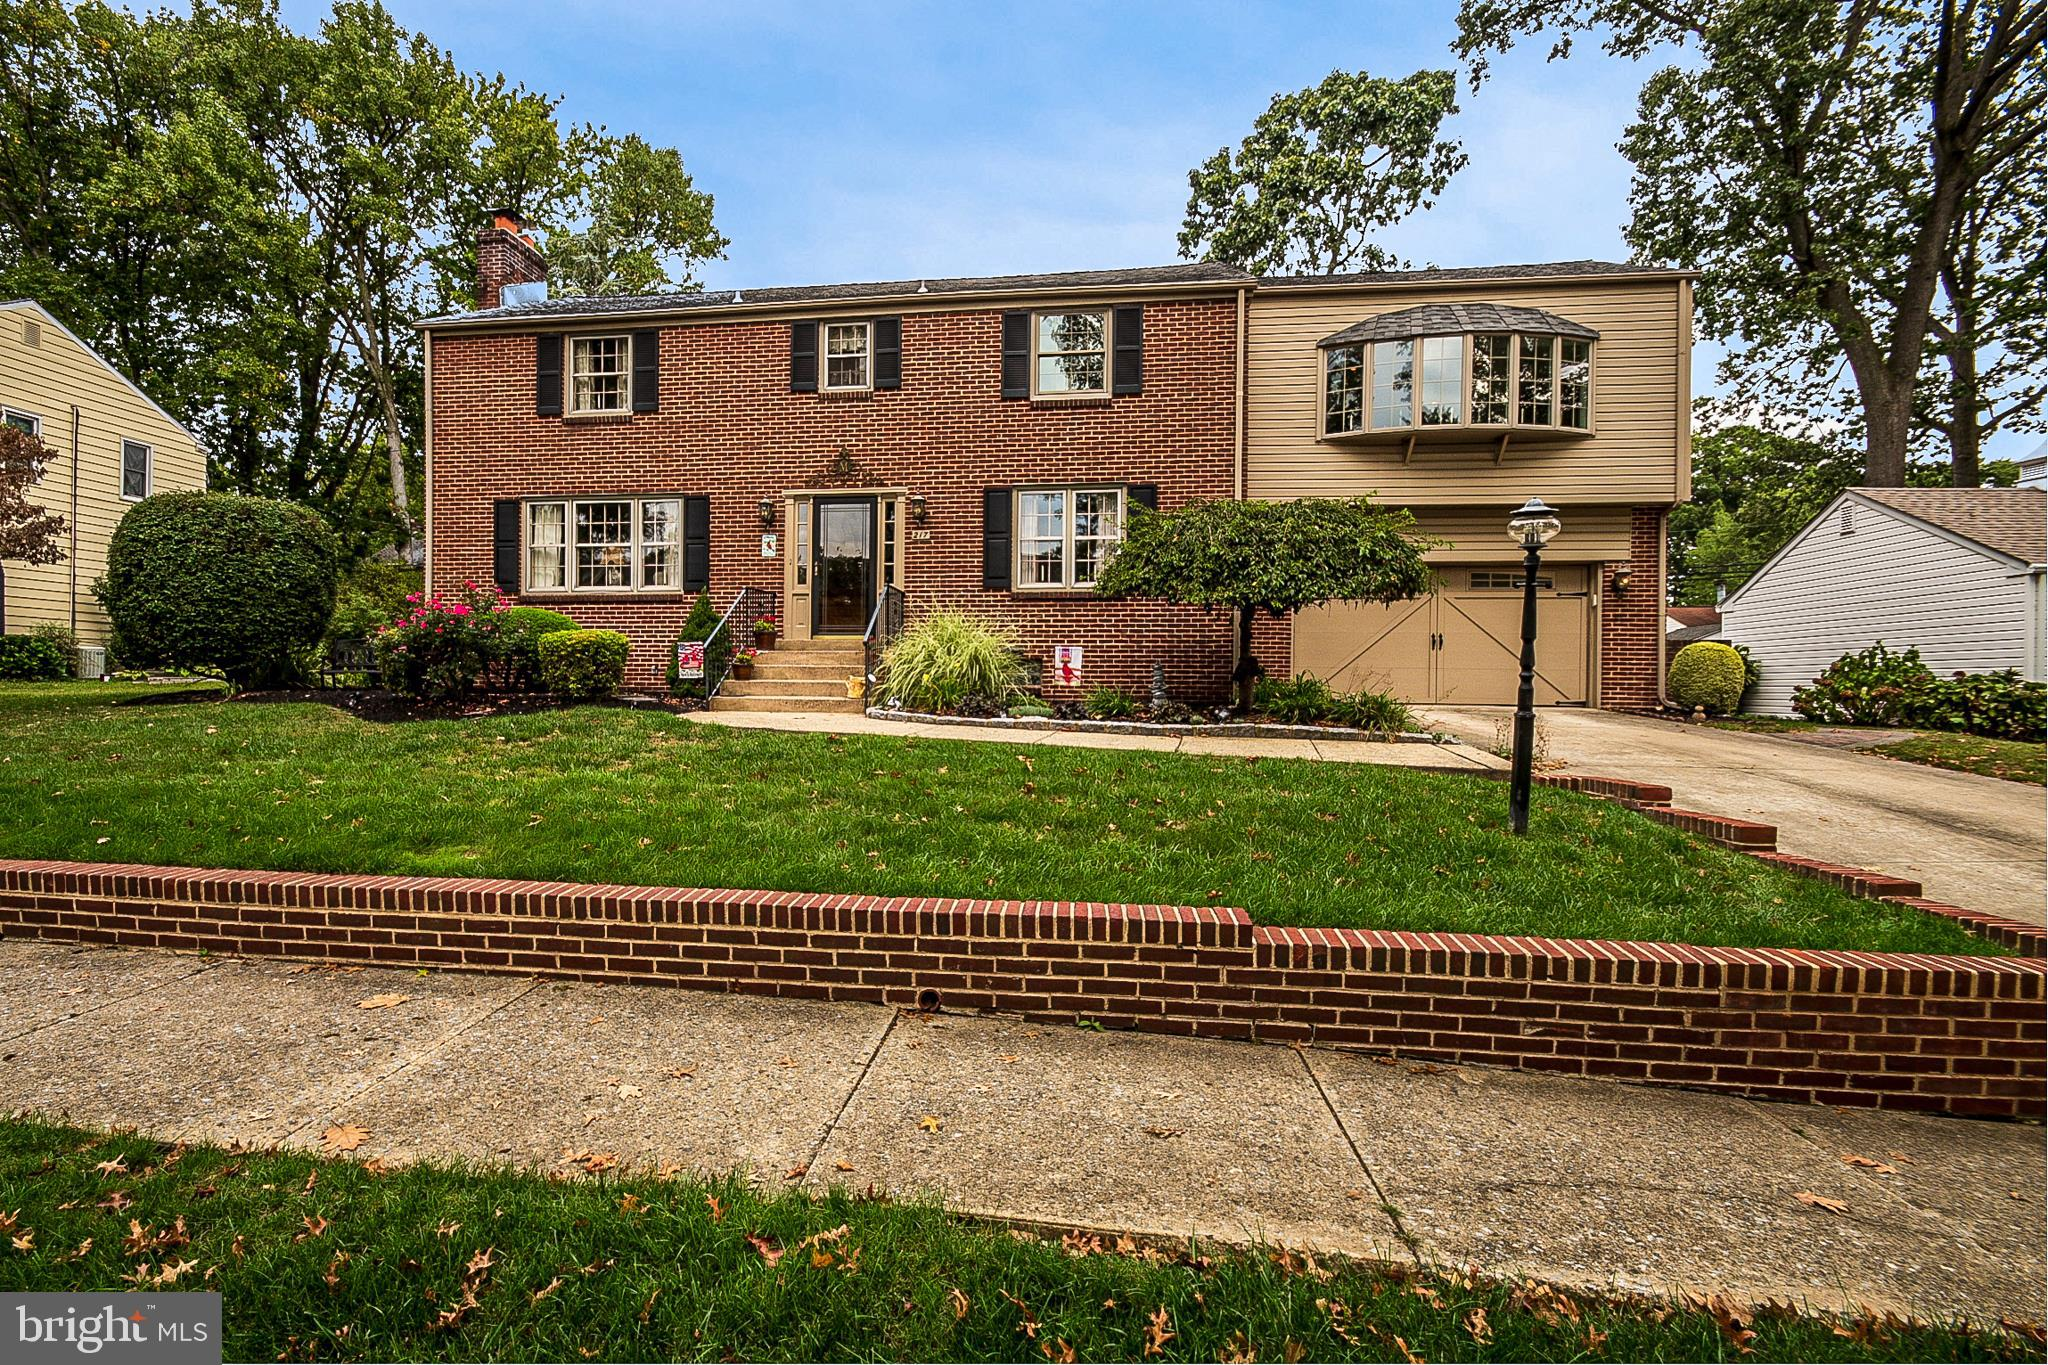 217 OAKWOOD ROAD, WILMINGTON, DE 19803